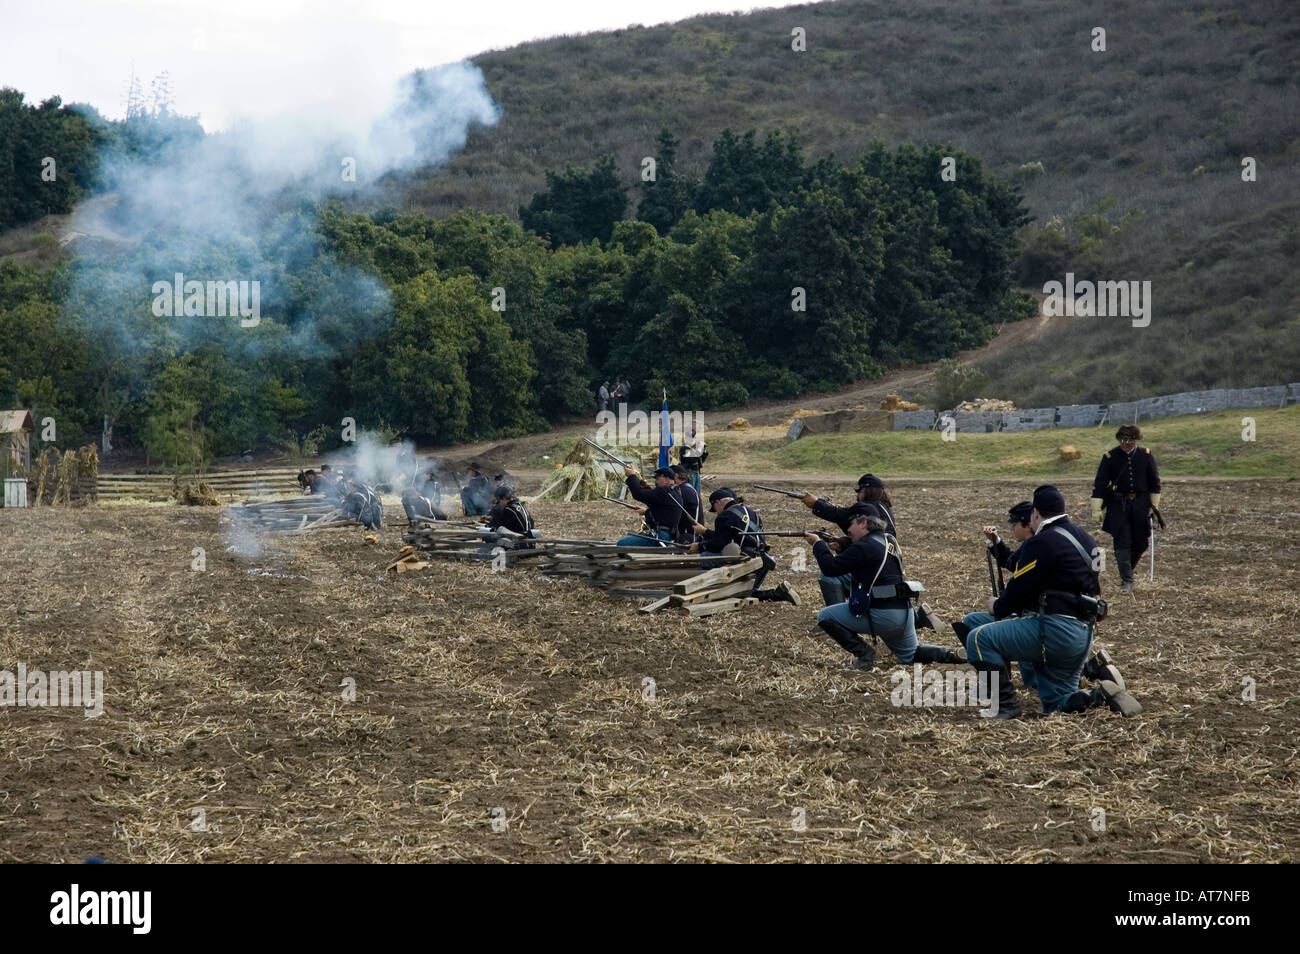 Firing squad shooting blanks at Civil War reenactment event - Stock Image